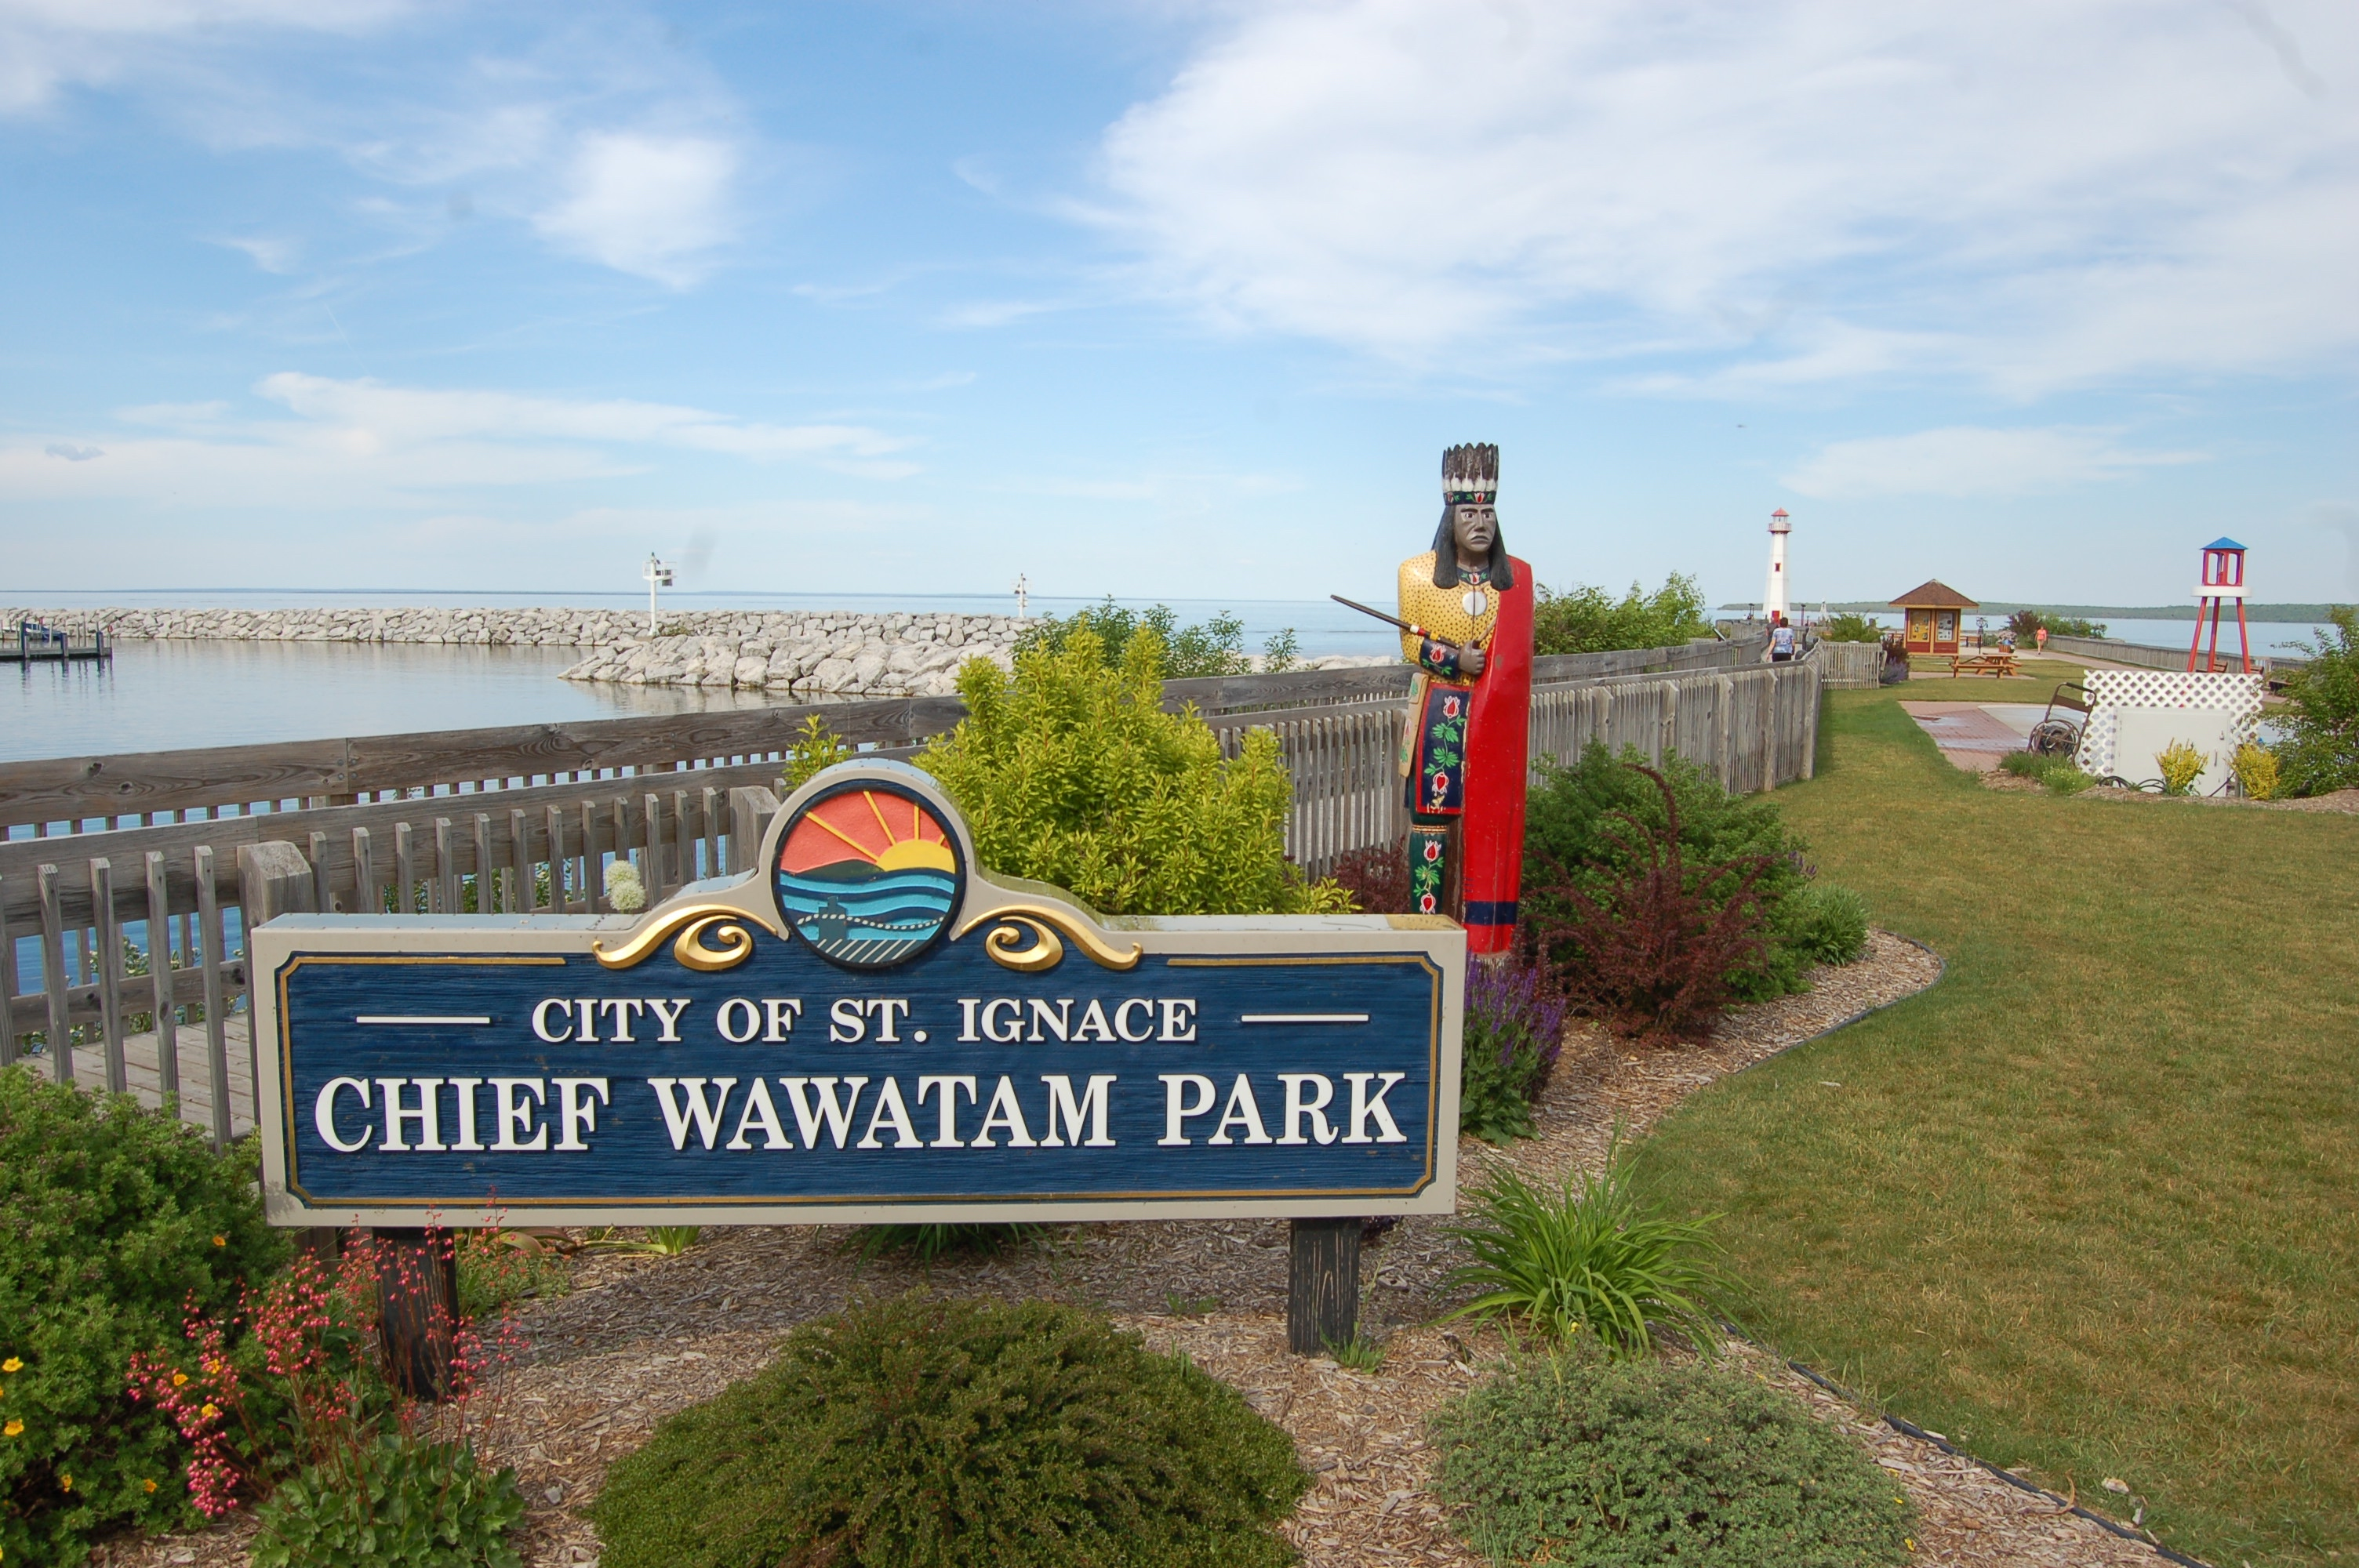 Chief Wawatam Park St. Ignace